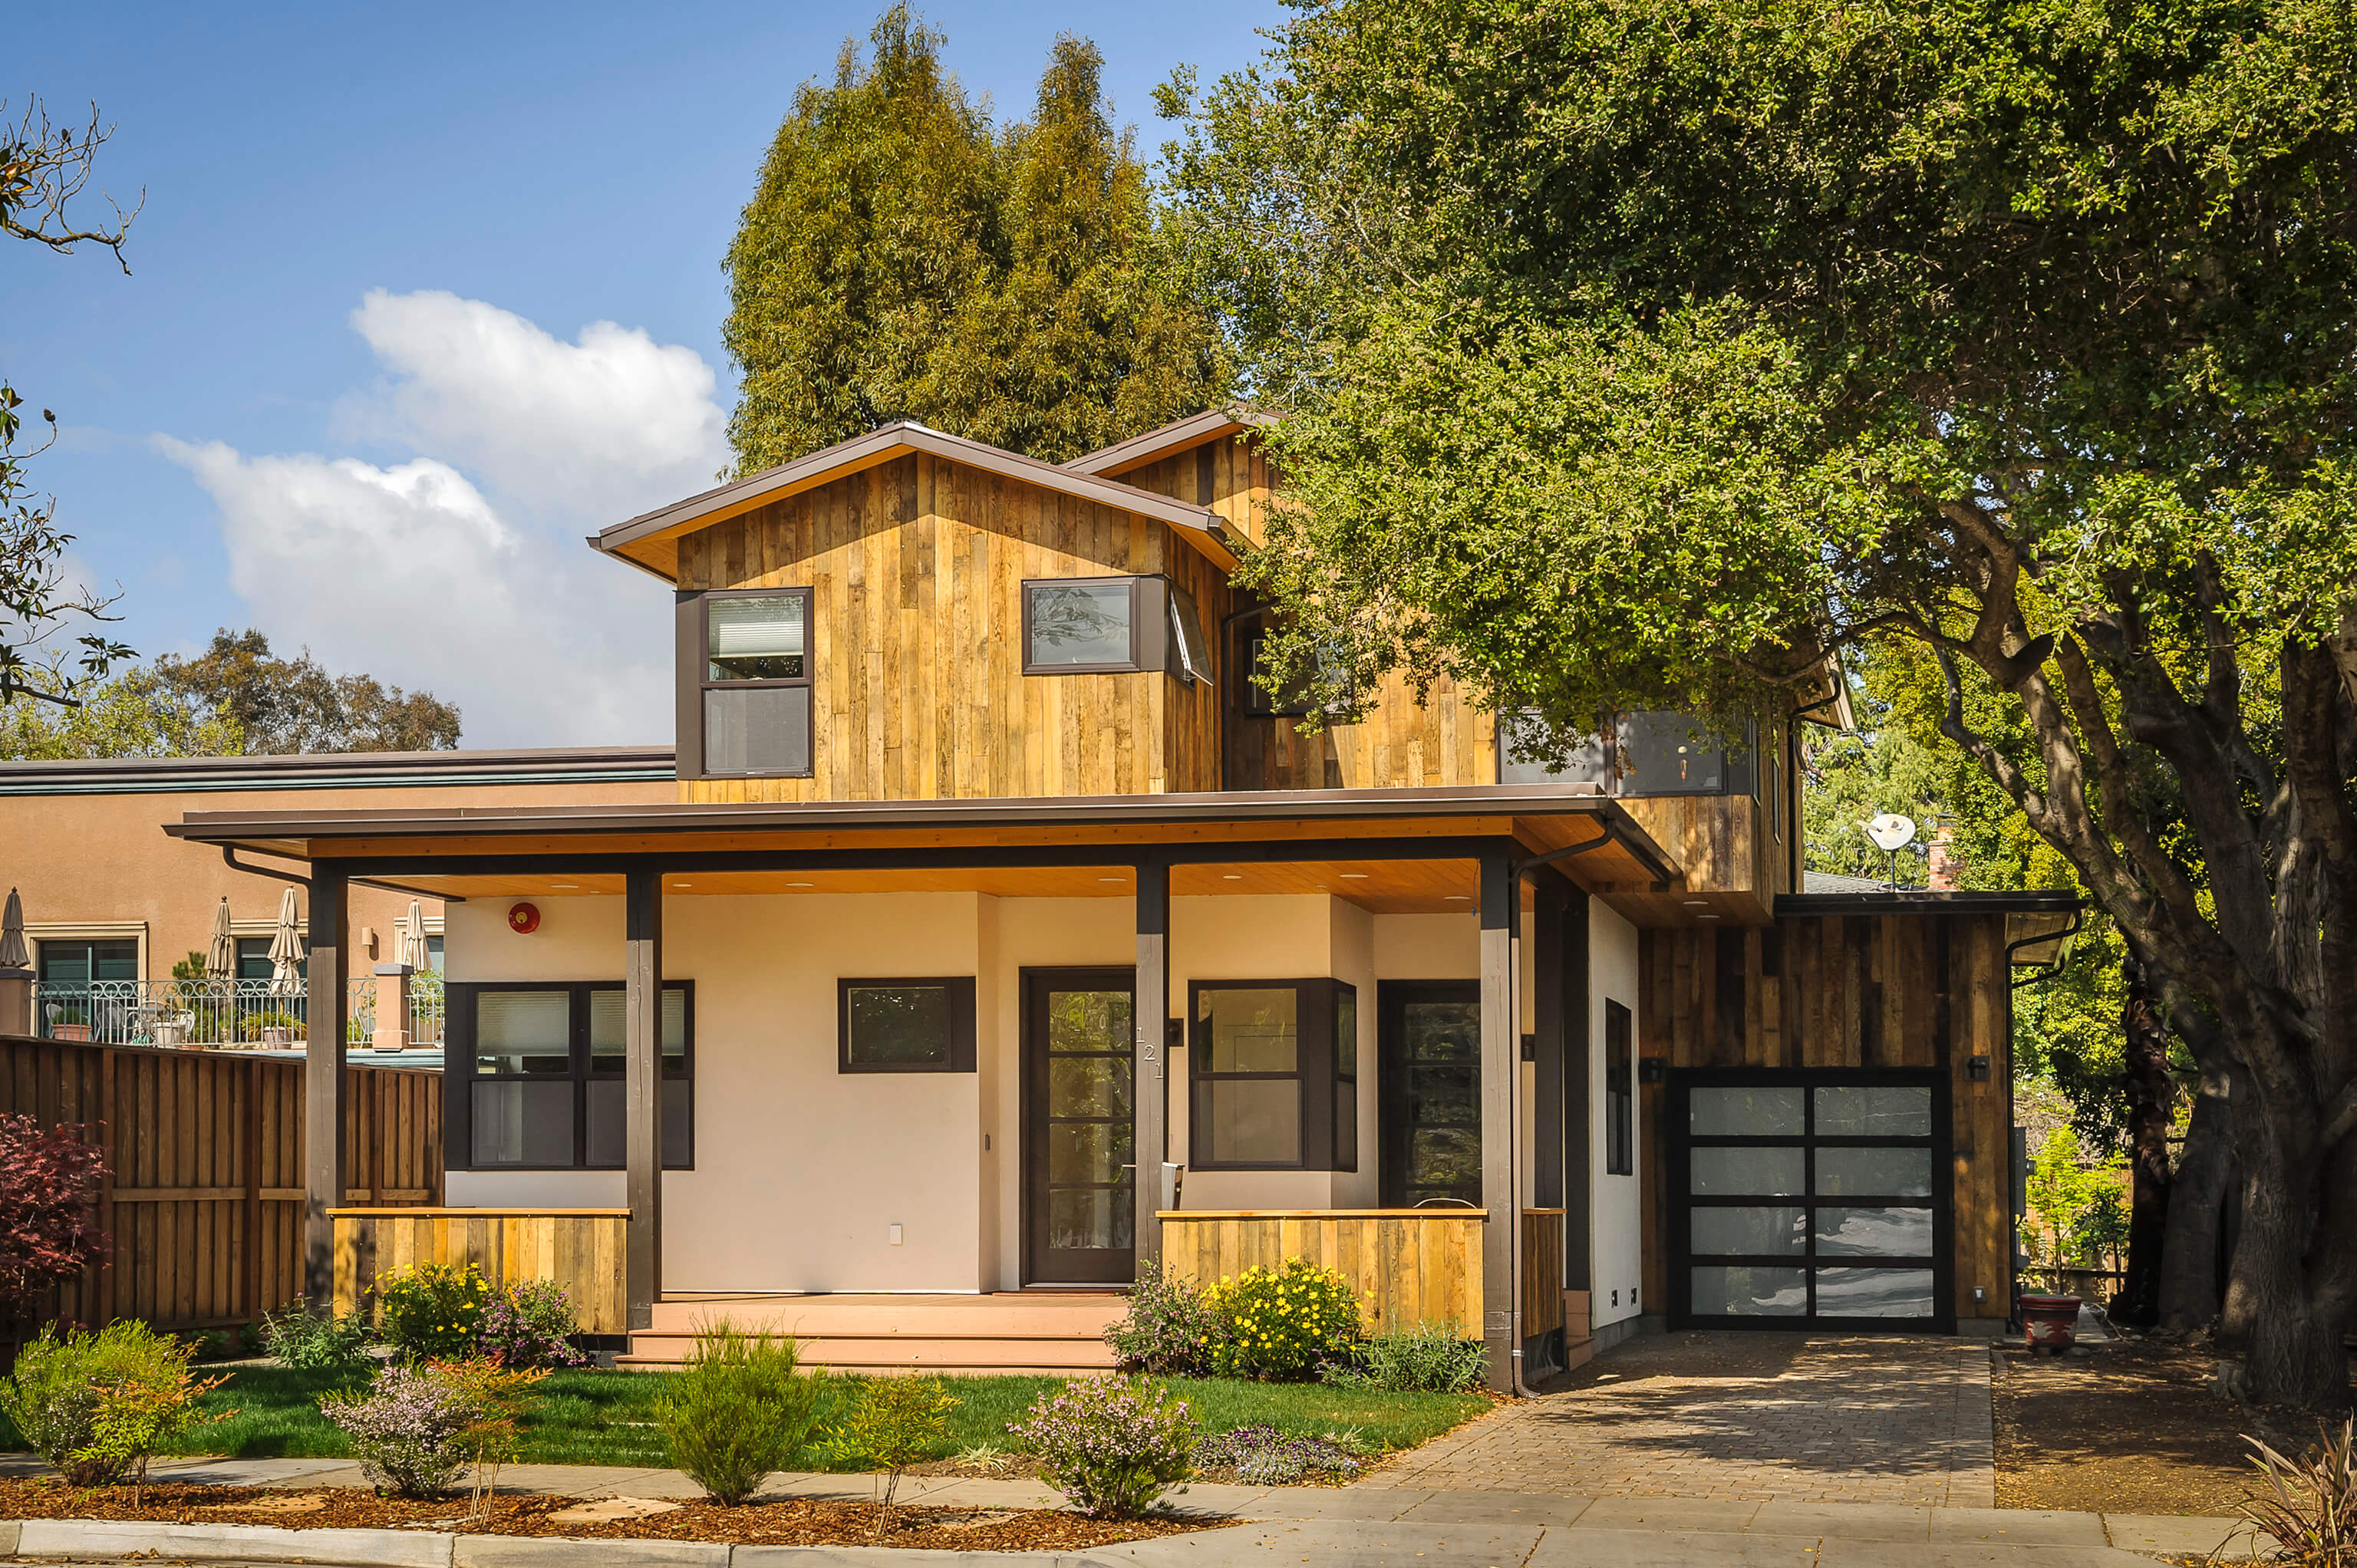 Building A Modular Home zeta communities inc. closes california modular home factory